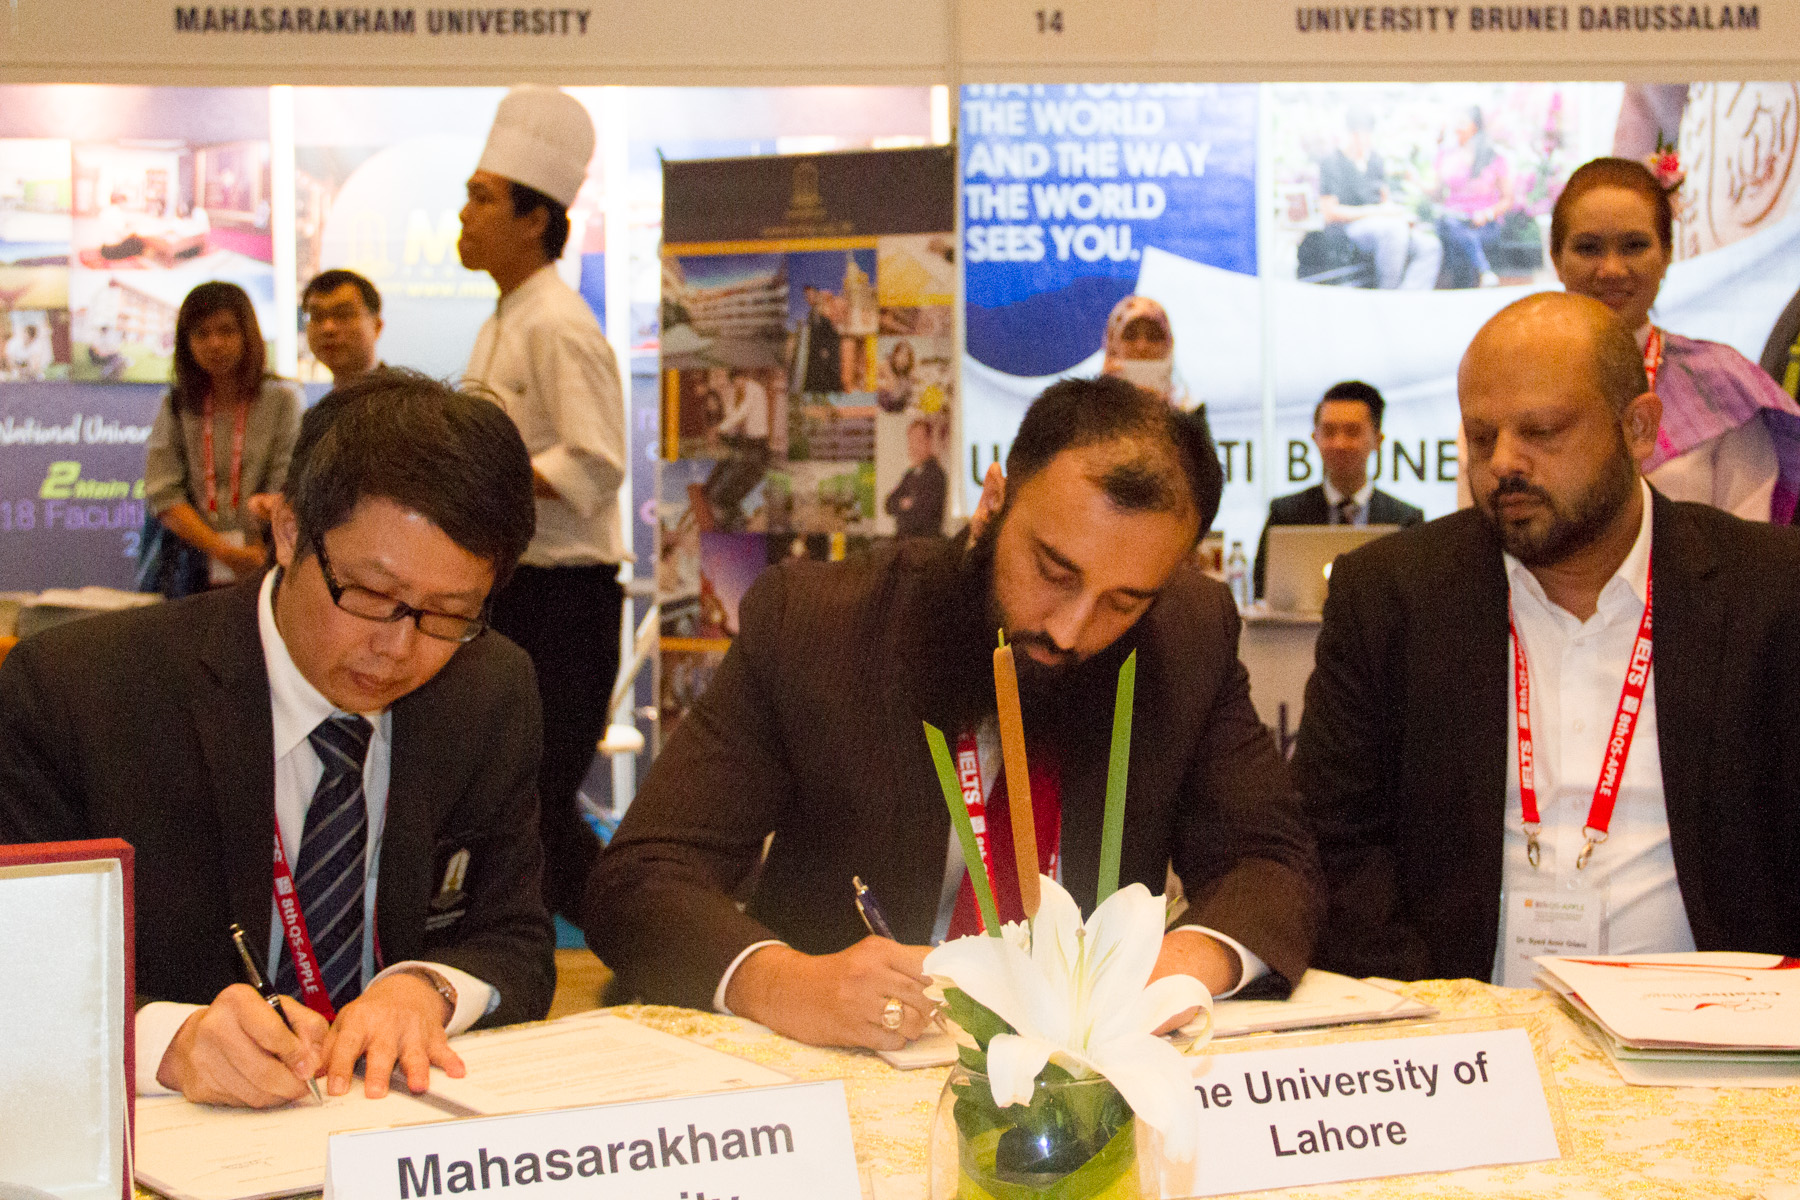 MoU Signing Ceremony with The University of Lahore, Pakistan